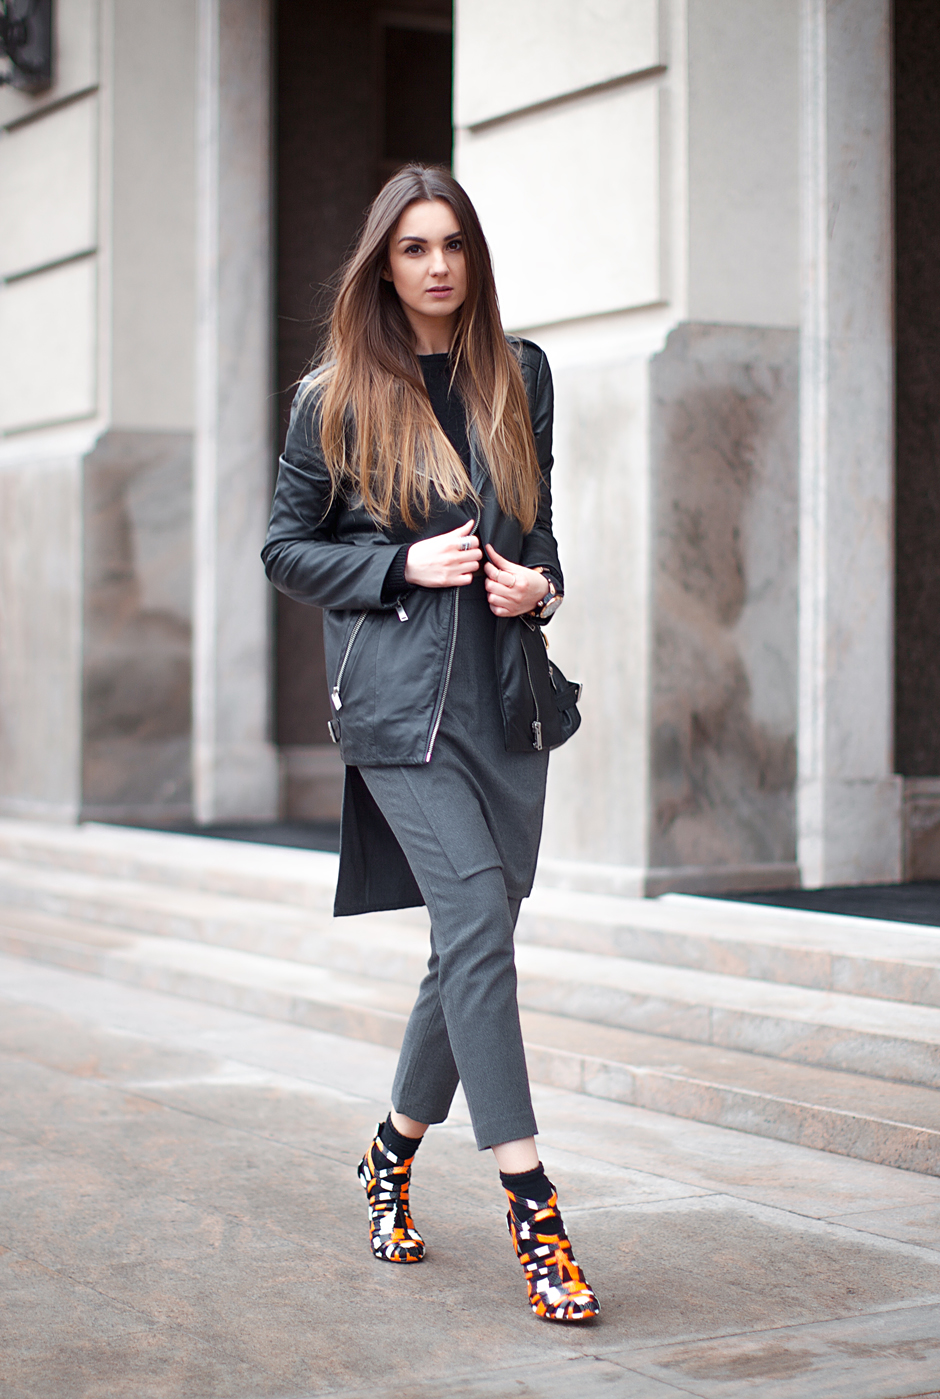 street-style-blogger-outfit-leather-jacket-skirt-over-pants